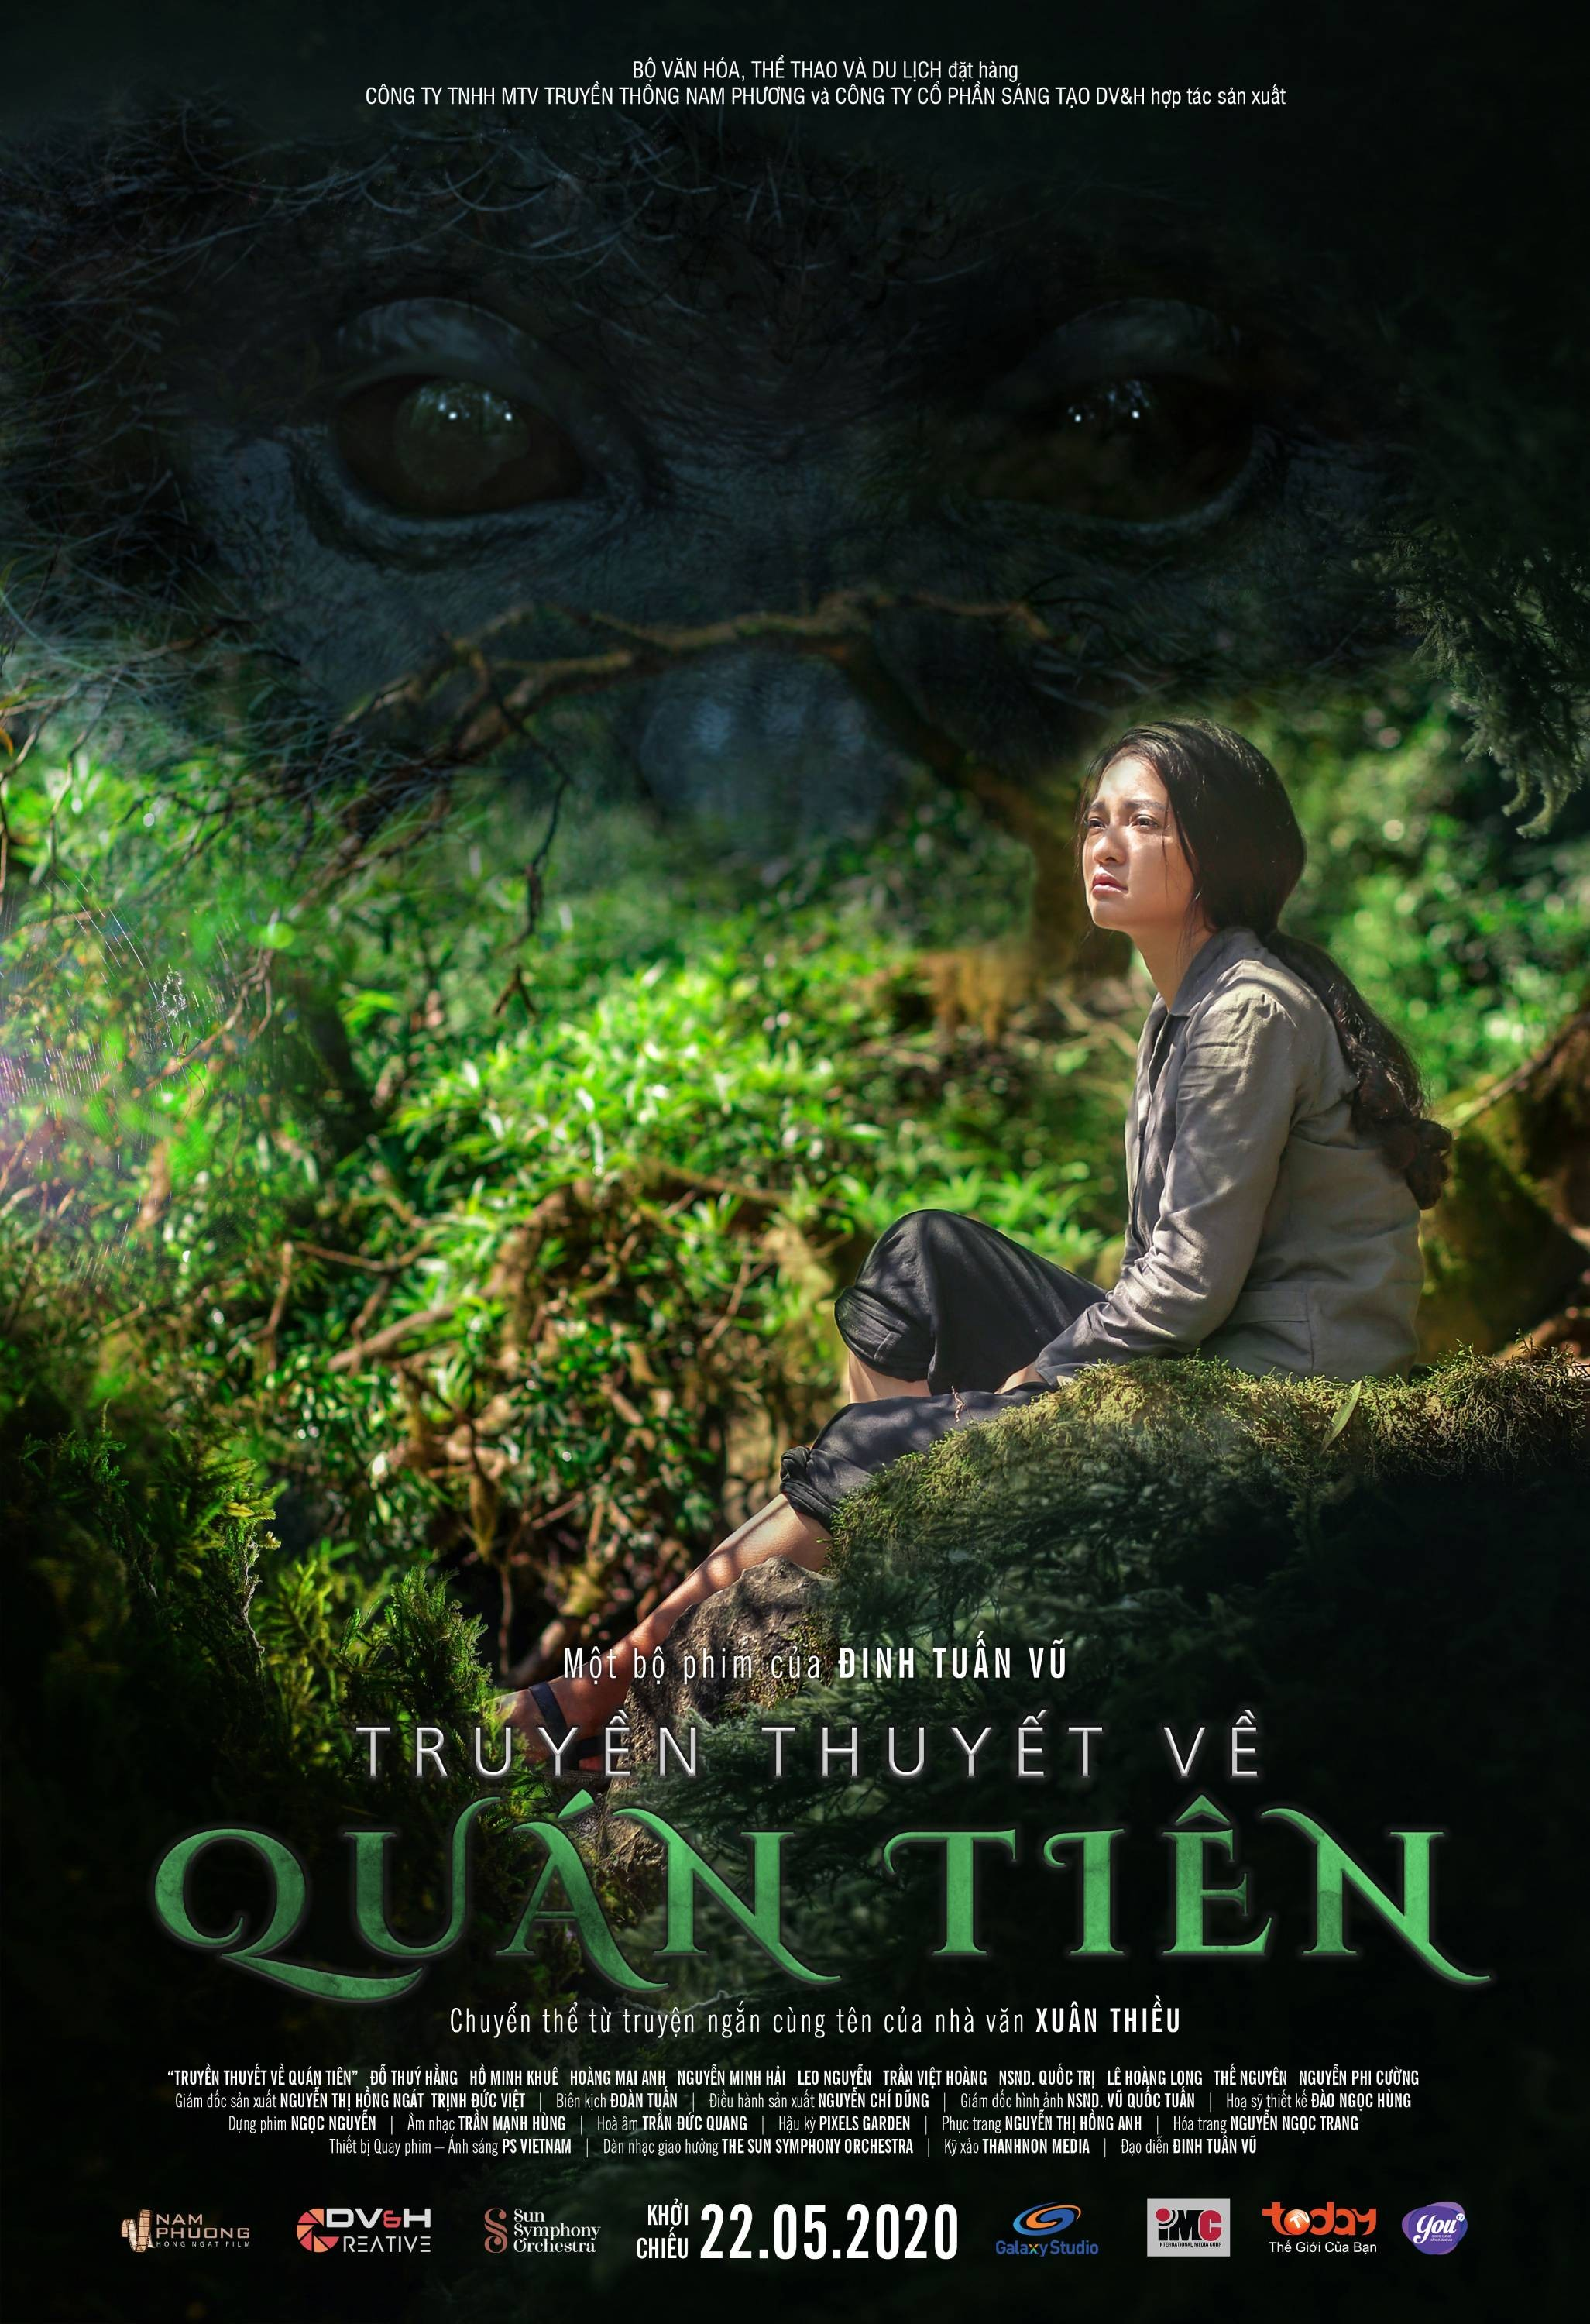 LEGEND OF QUAN TIEN